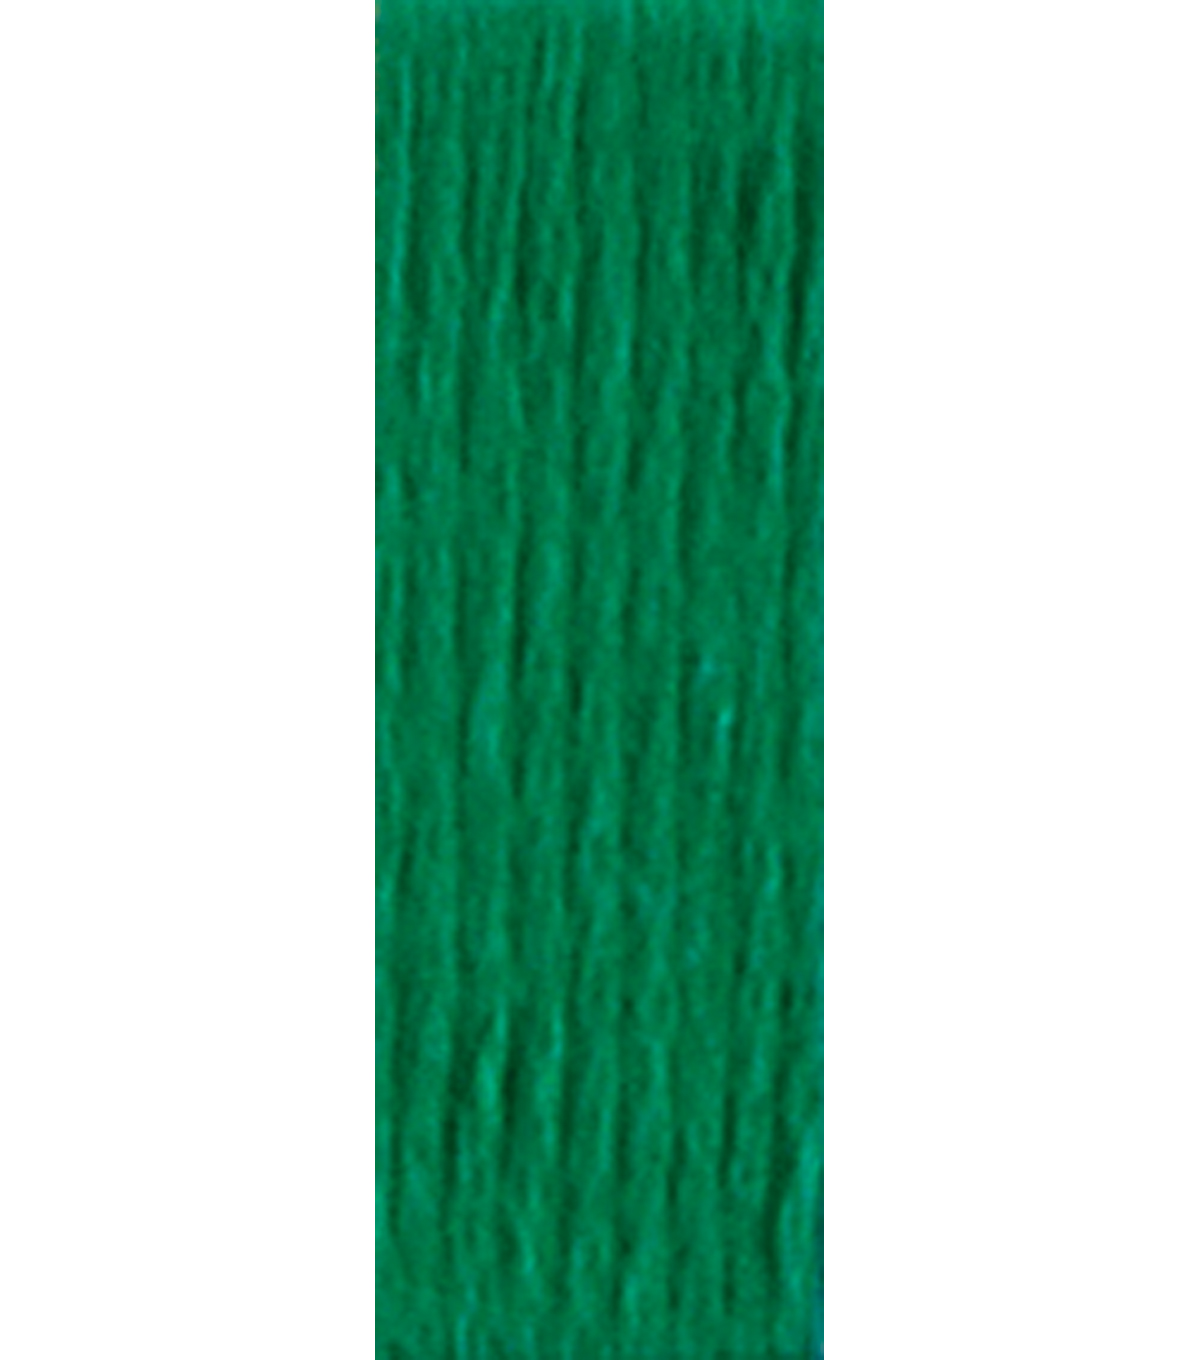 DMC Pearl Cotton Thread 27 Yds Size 5, Green